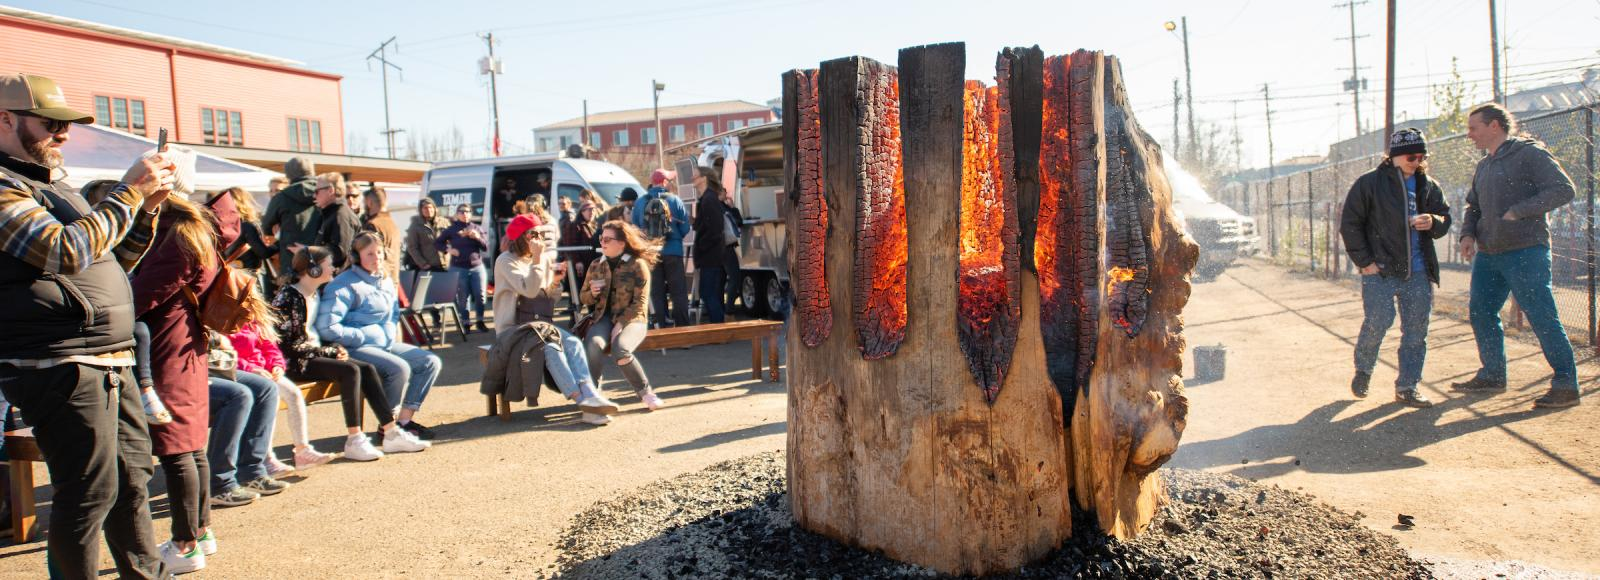 A large upright log on fire outside in an open parking lot